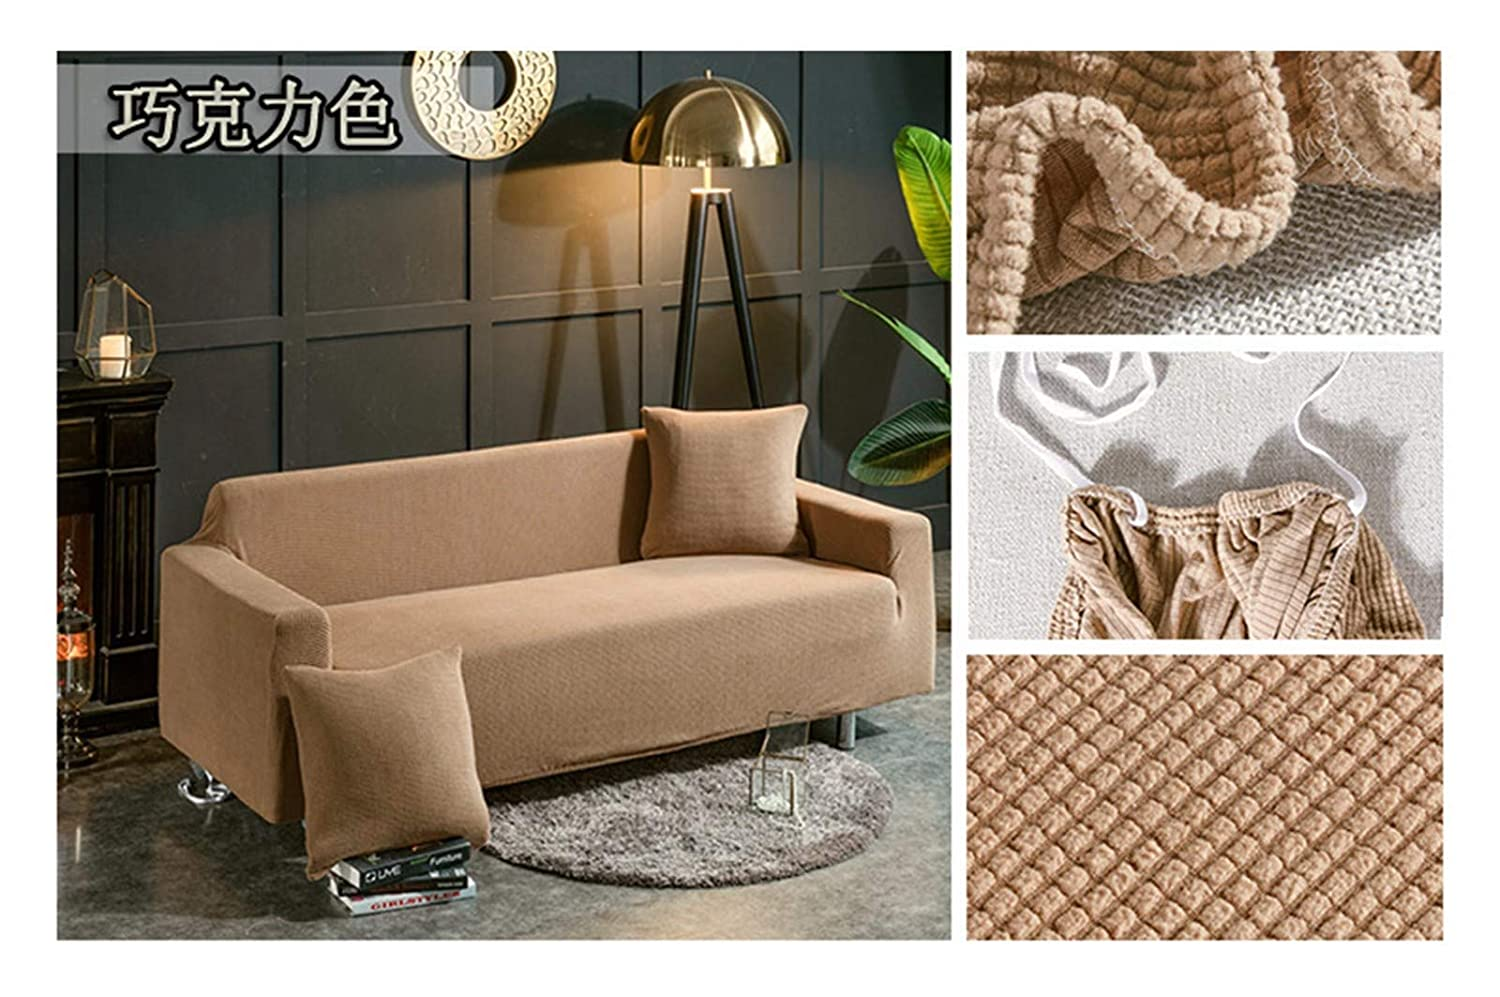 4seat VGUYFUYH Khaki Skid-Proof Sofa Cover Polyester Full Package Elasticity Home Versatile Sofa Cover Simple Fashion One Piece Durable Dustproof Pet Dog Predective Cover,4Seat